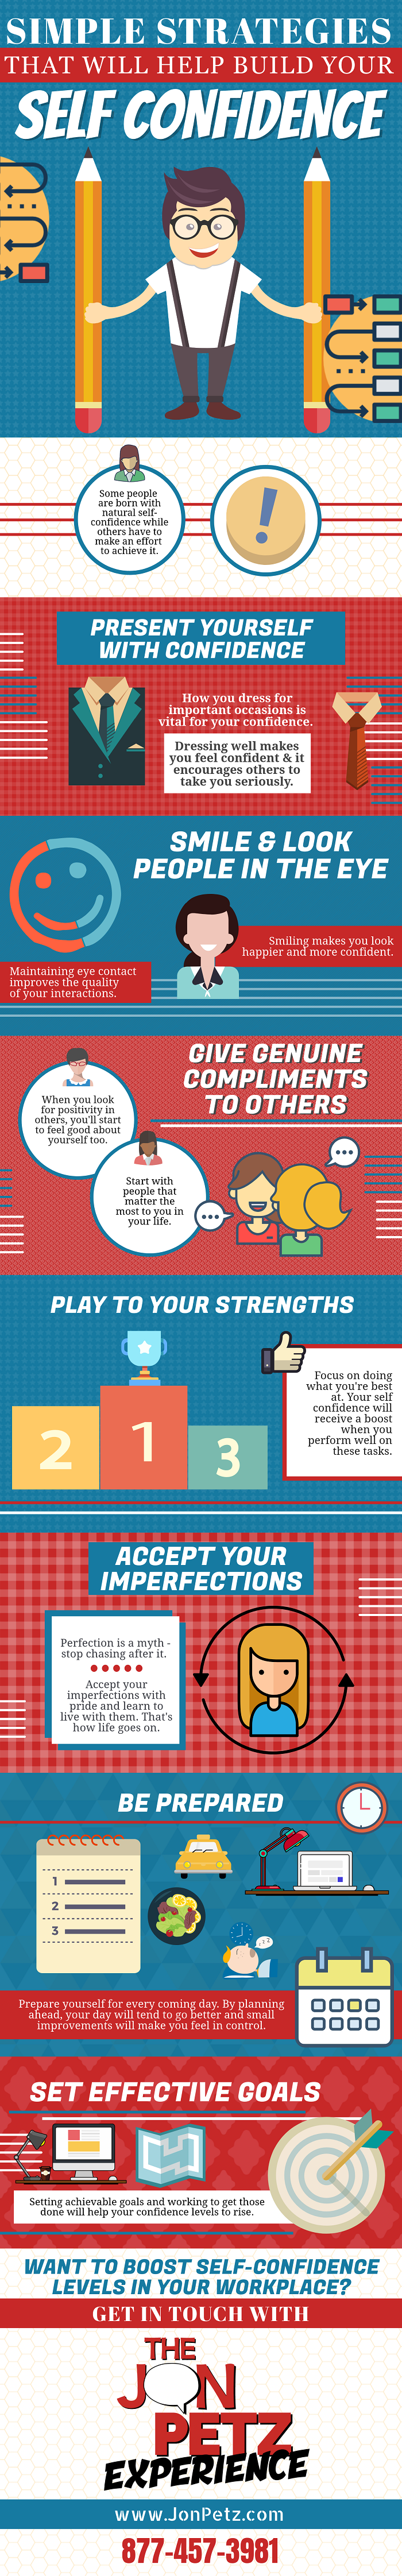 Infographic: Simple Strategies That Will Help Build Your Self Confidence